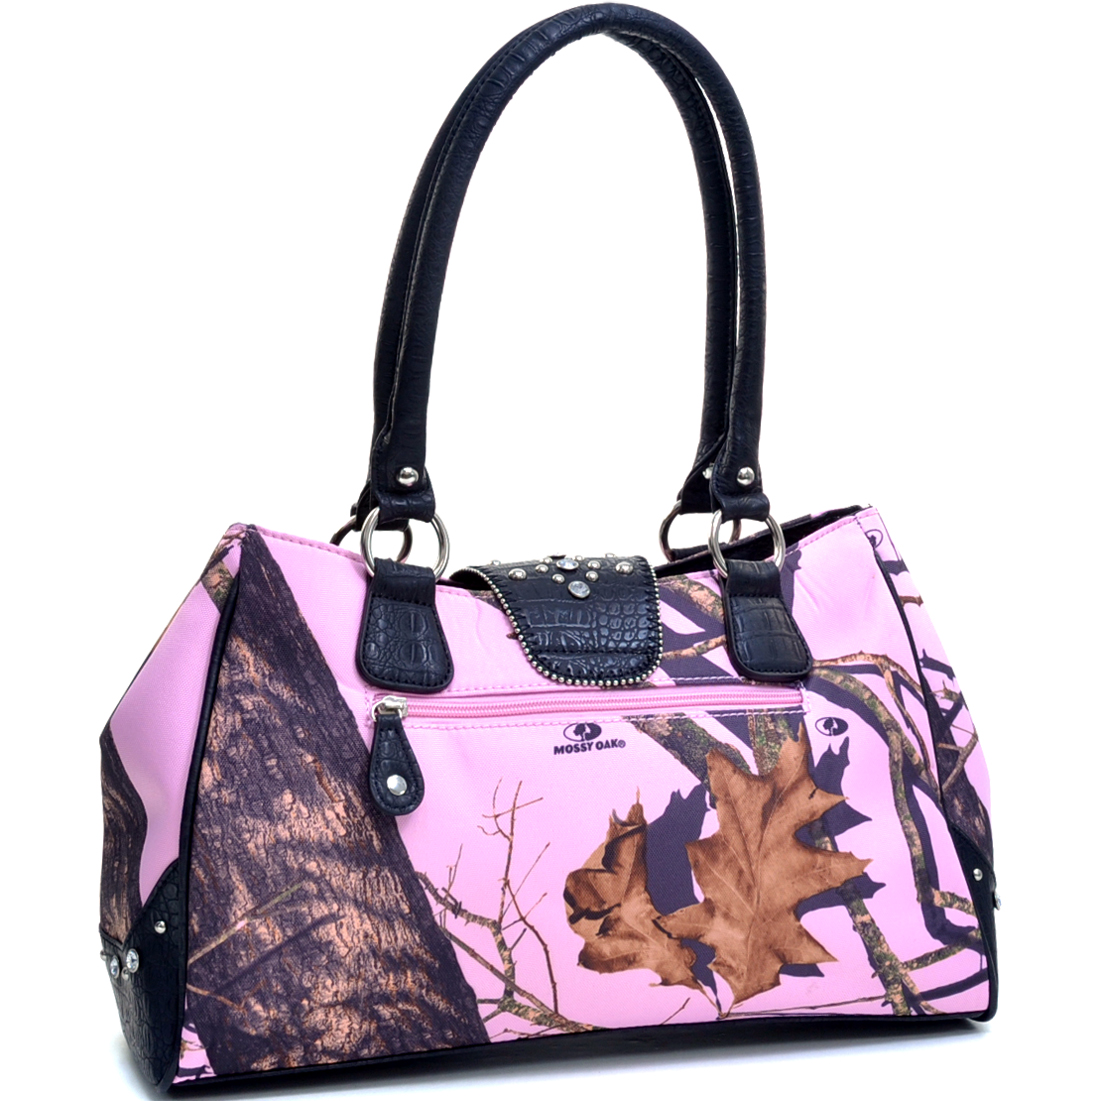 Mossy Oak® Chelsea's Pockets Handbag